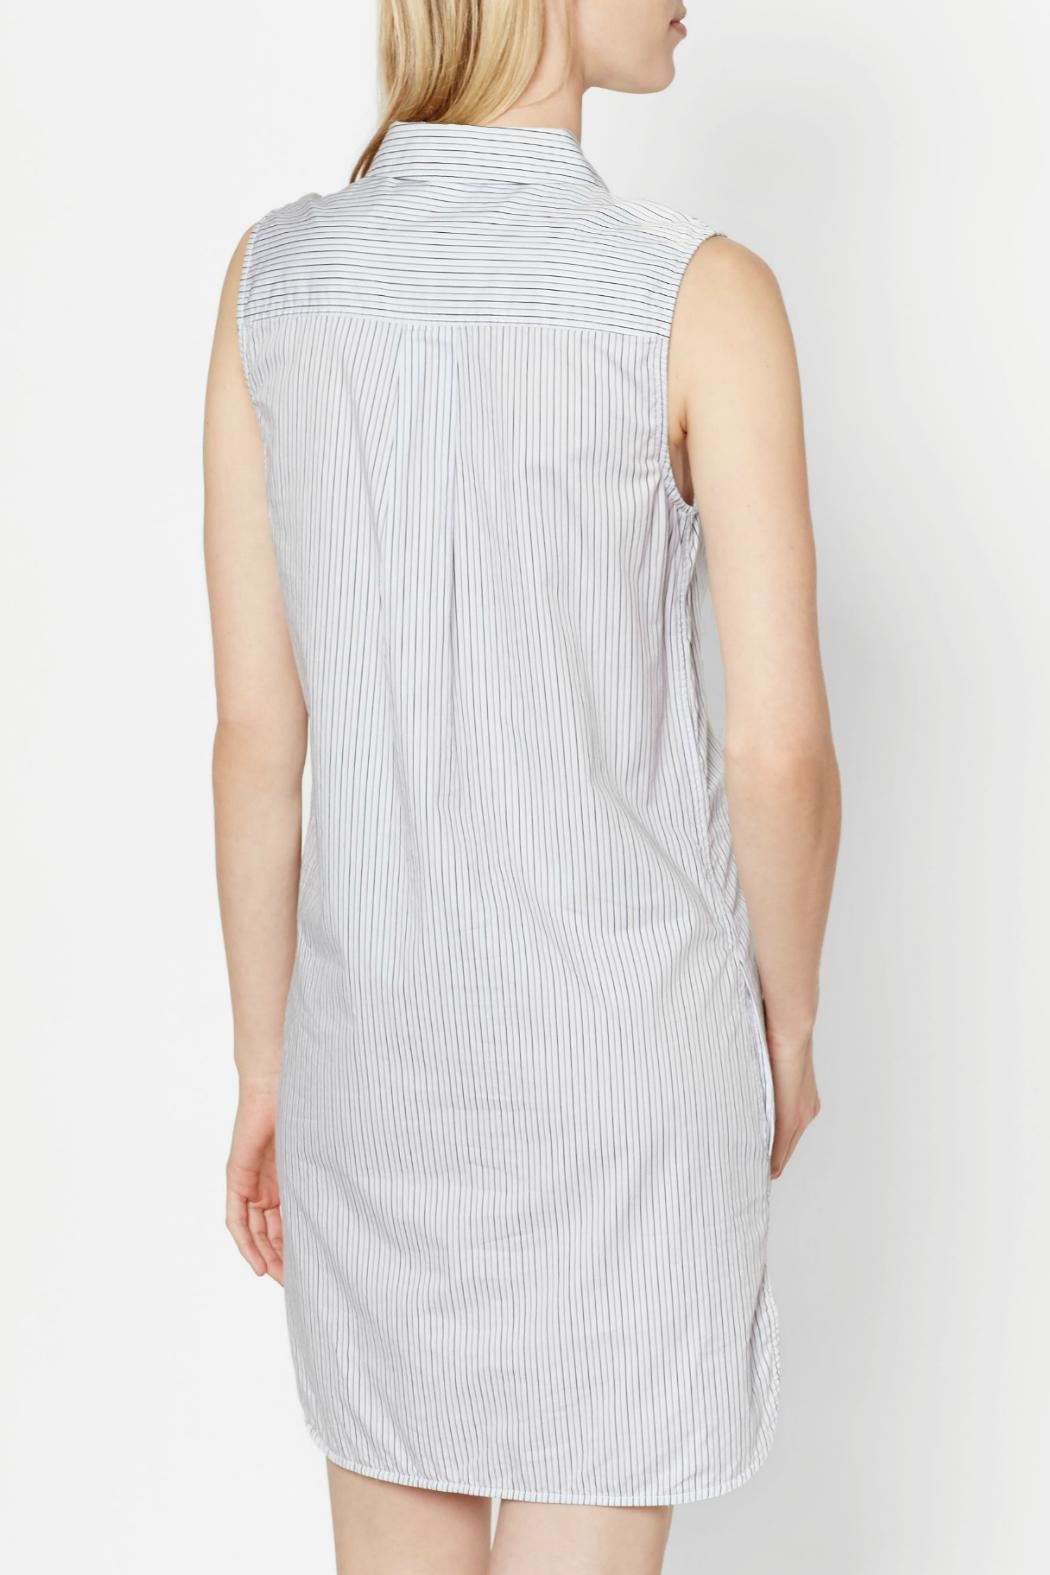 Equipment Janna Cotton Dress - Side Cropped Image